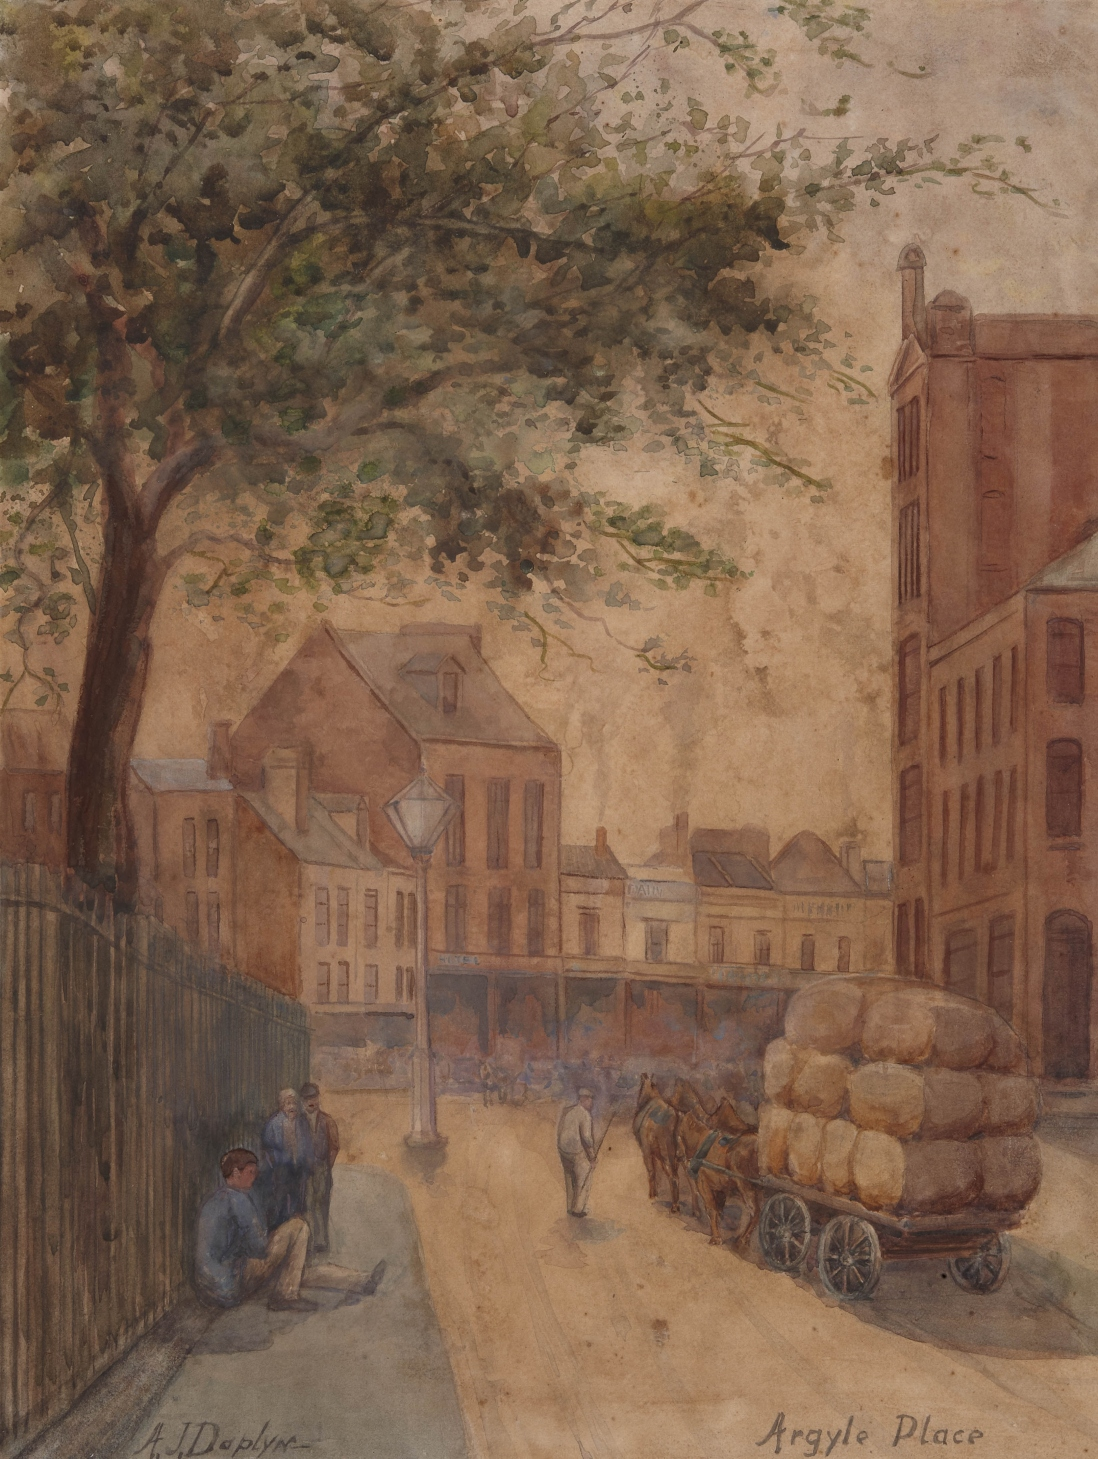 Painting showing a street with a wagon loaded with bails. In the foreground men sit up against a timber paling fence.